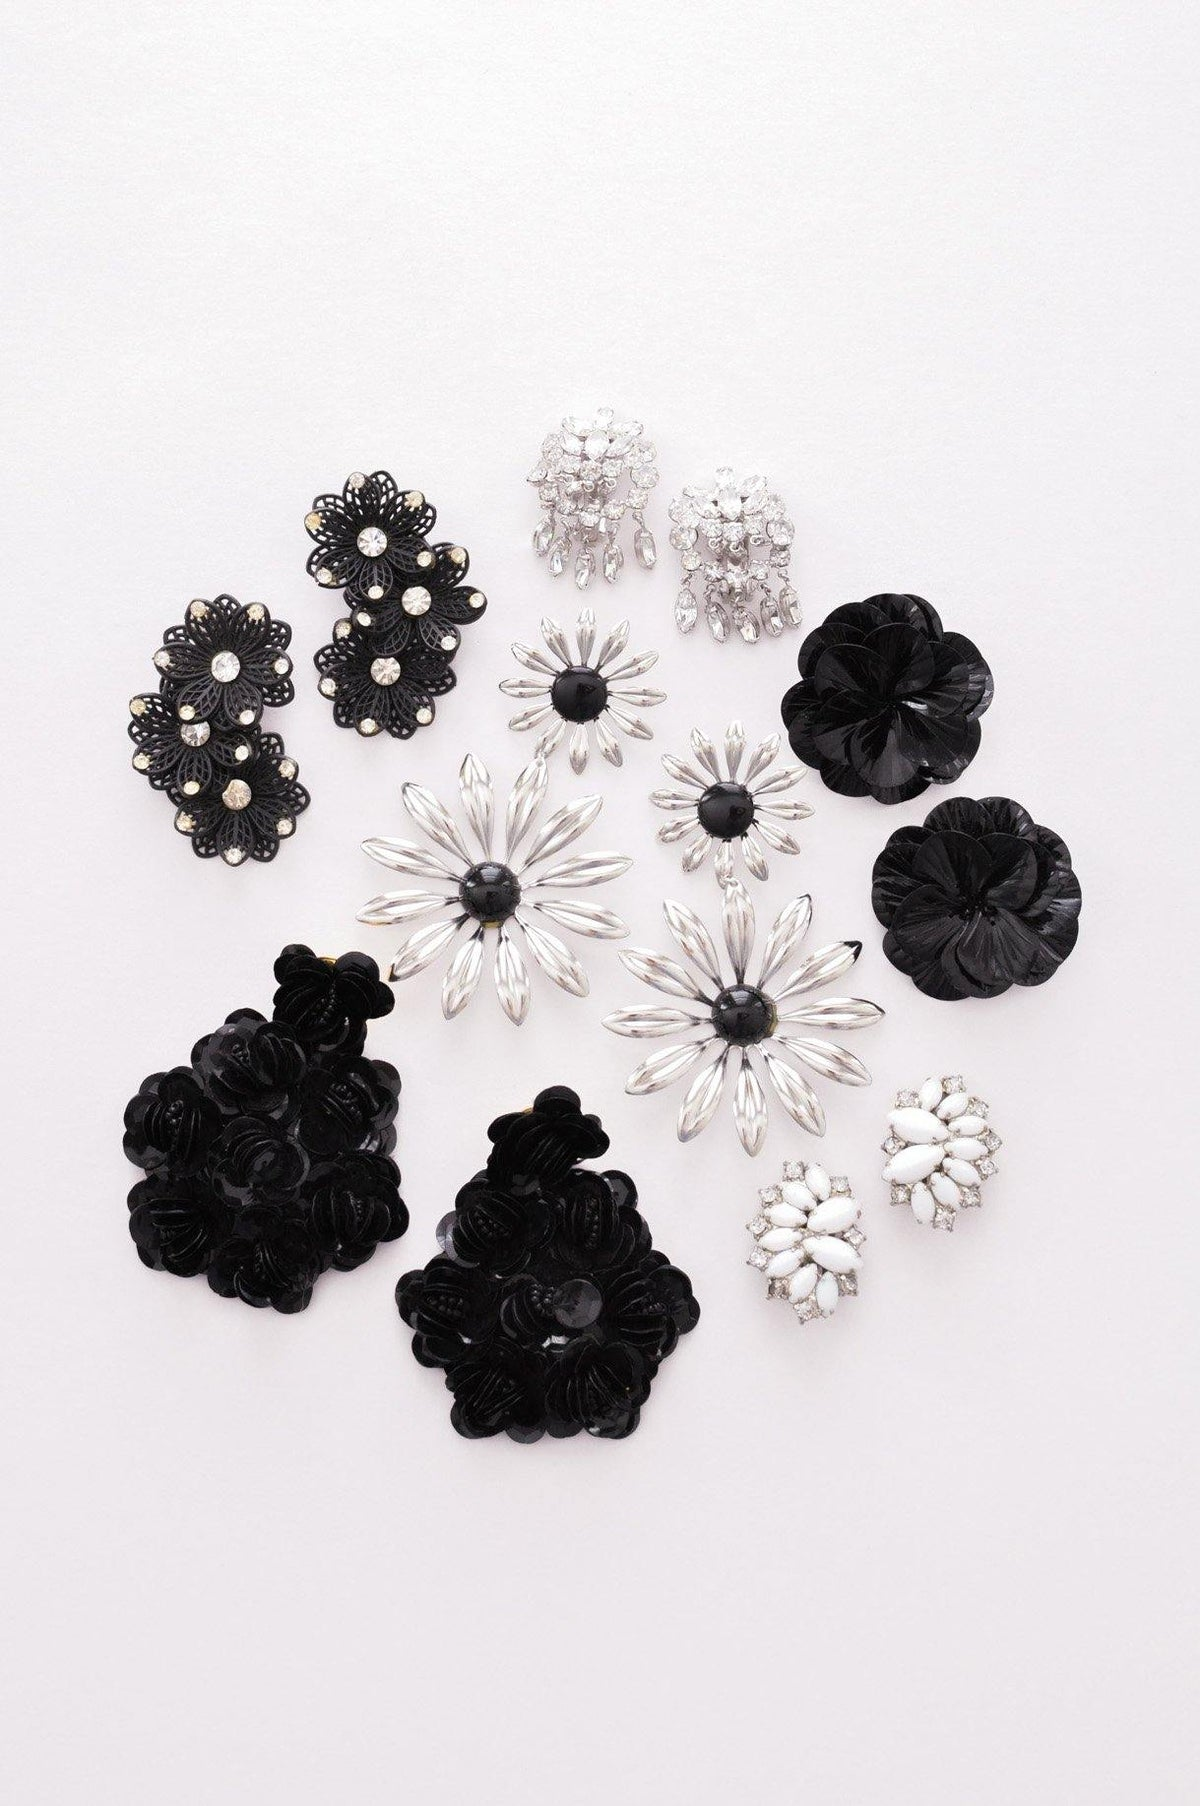 Vintage black & silver floral statement earrings from Sweet & Spark.